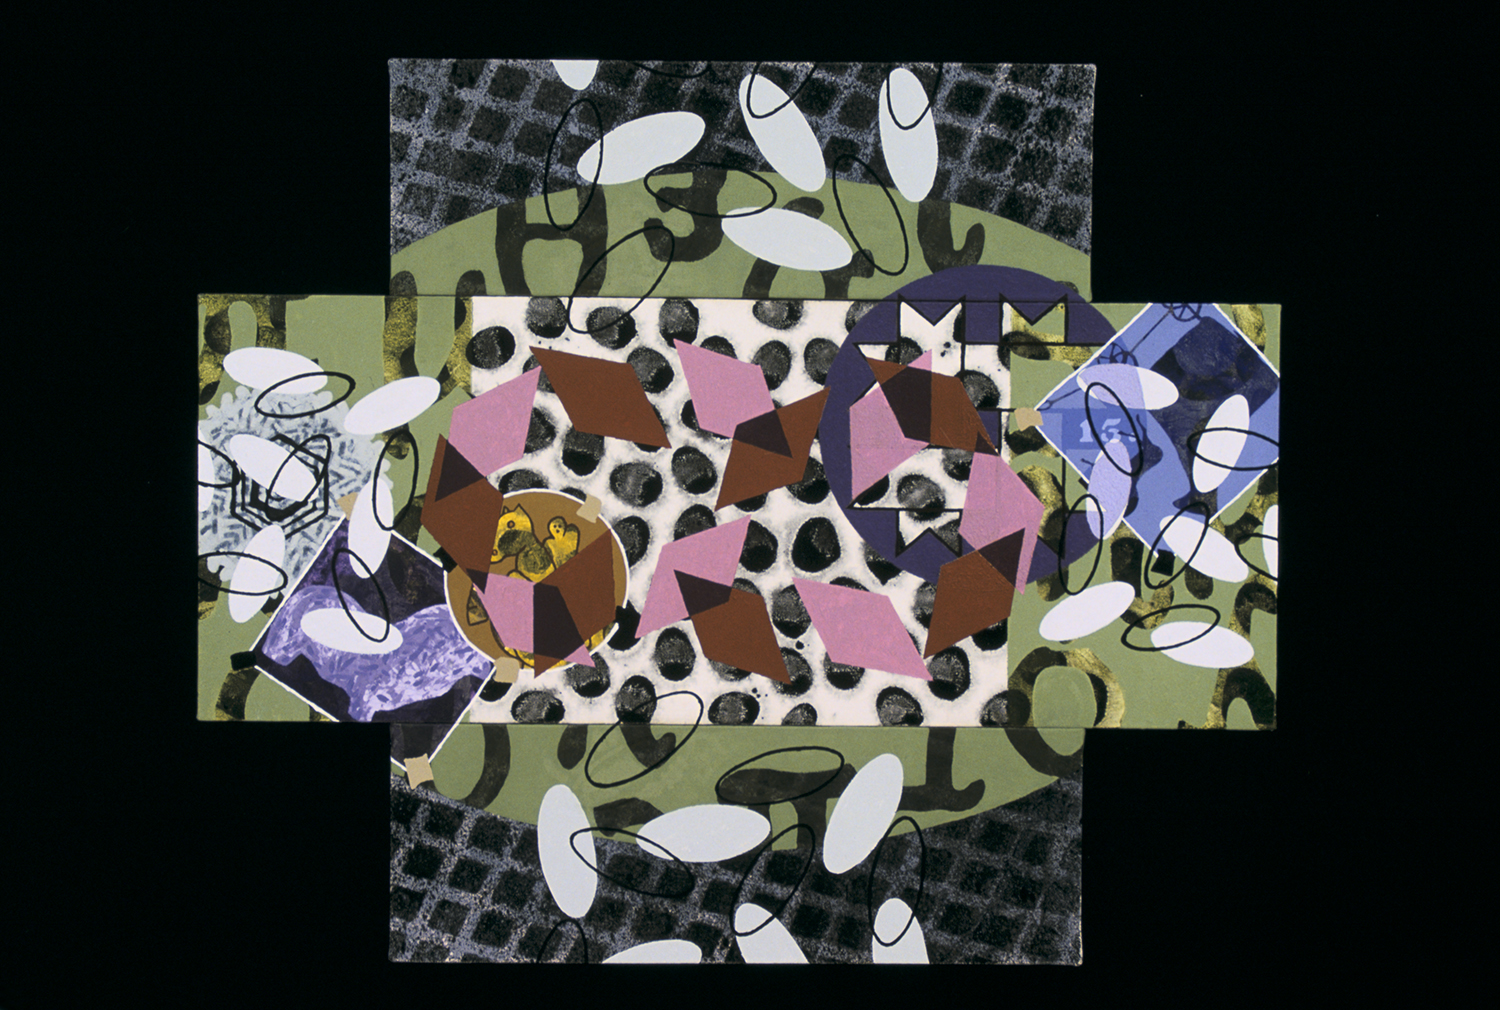 Triptych 7  , 2001, oil and wax on canvas, 36 x 36 in.